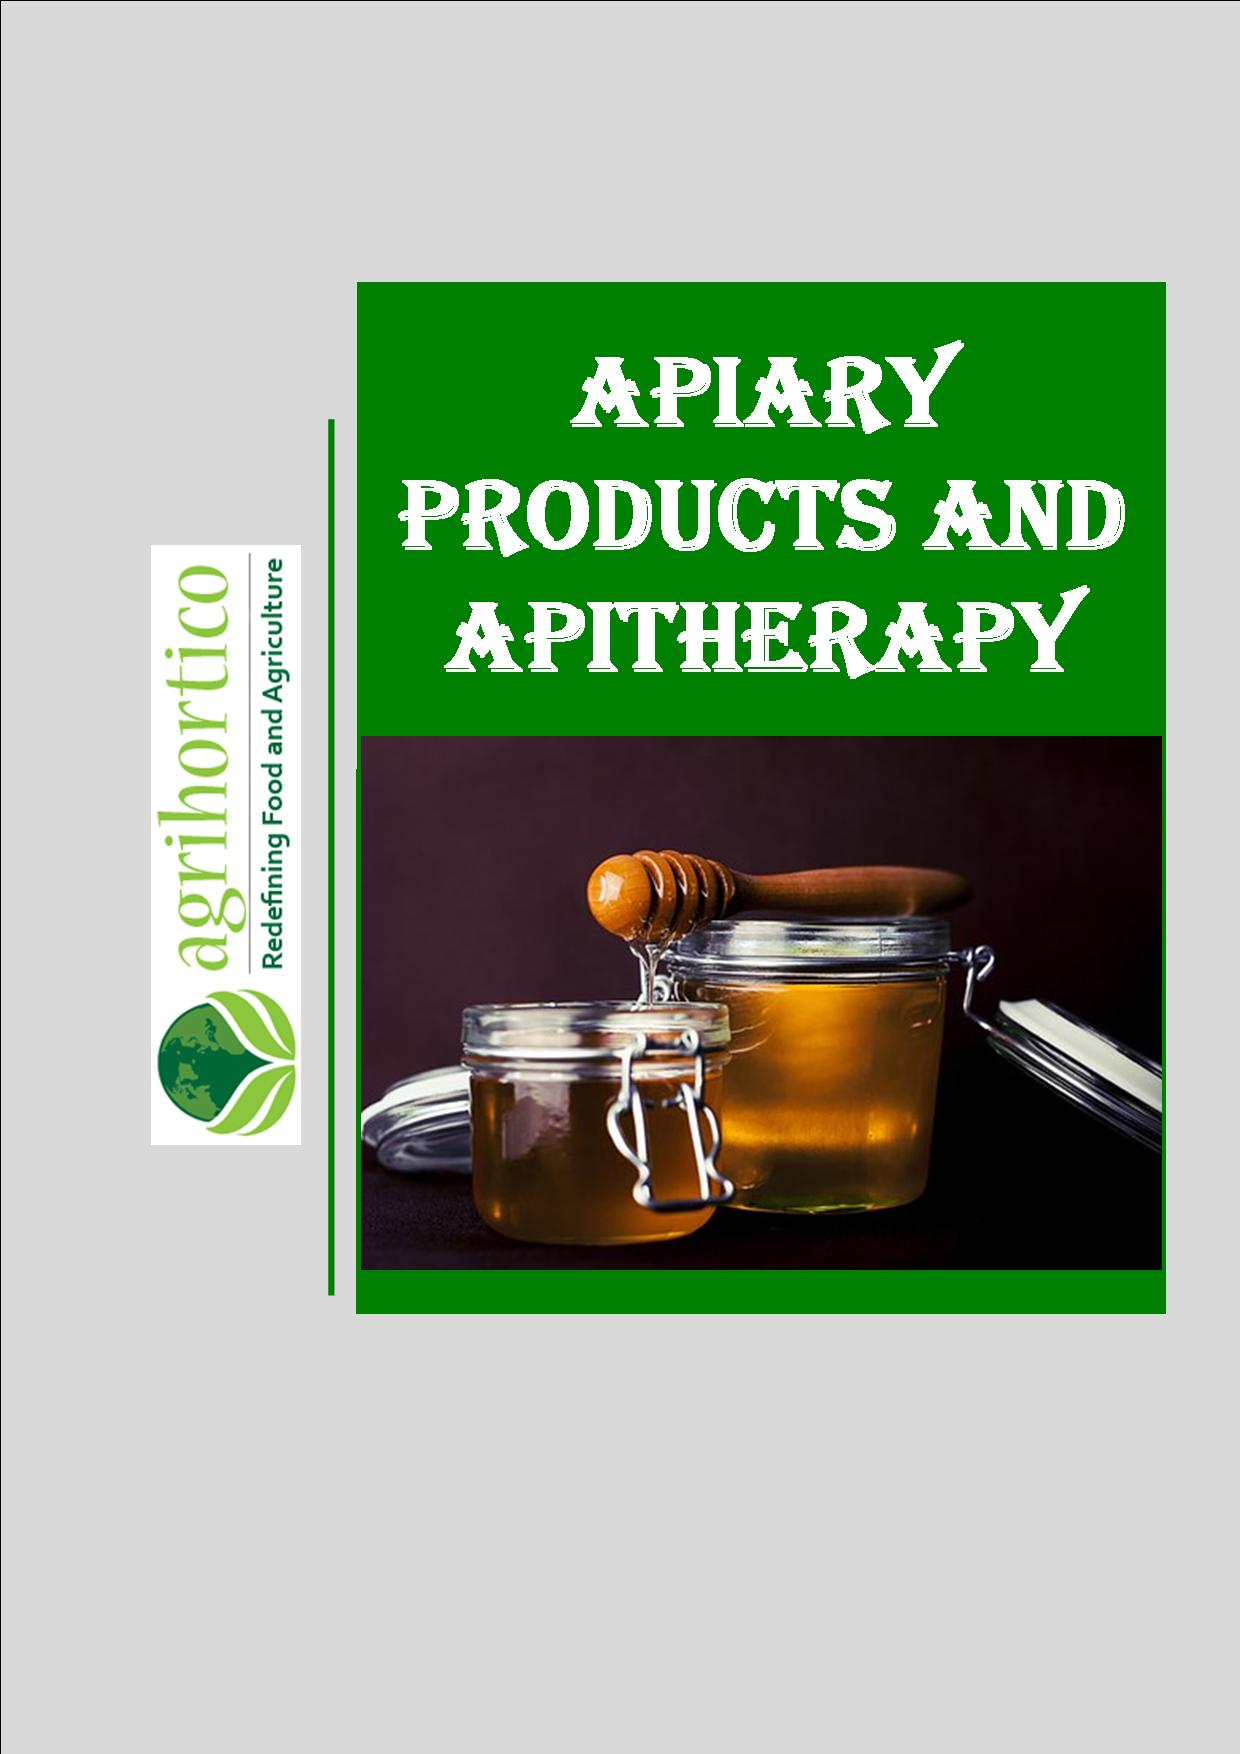 apiary-products